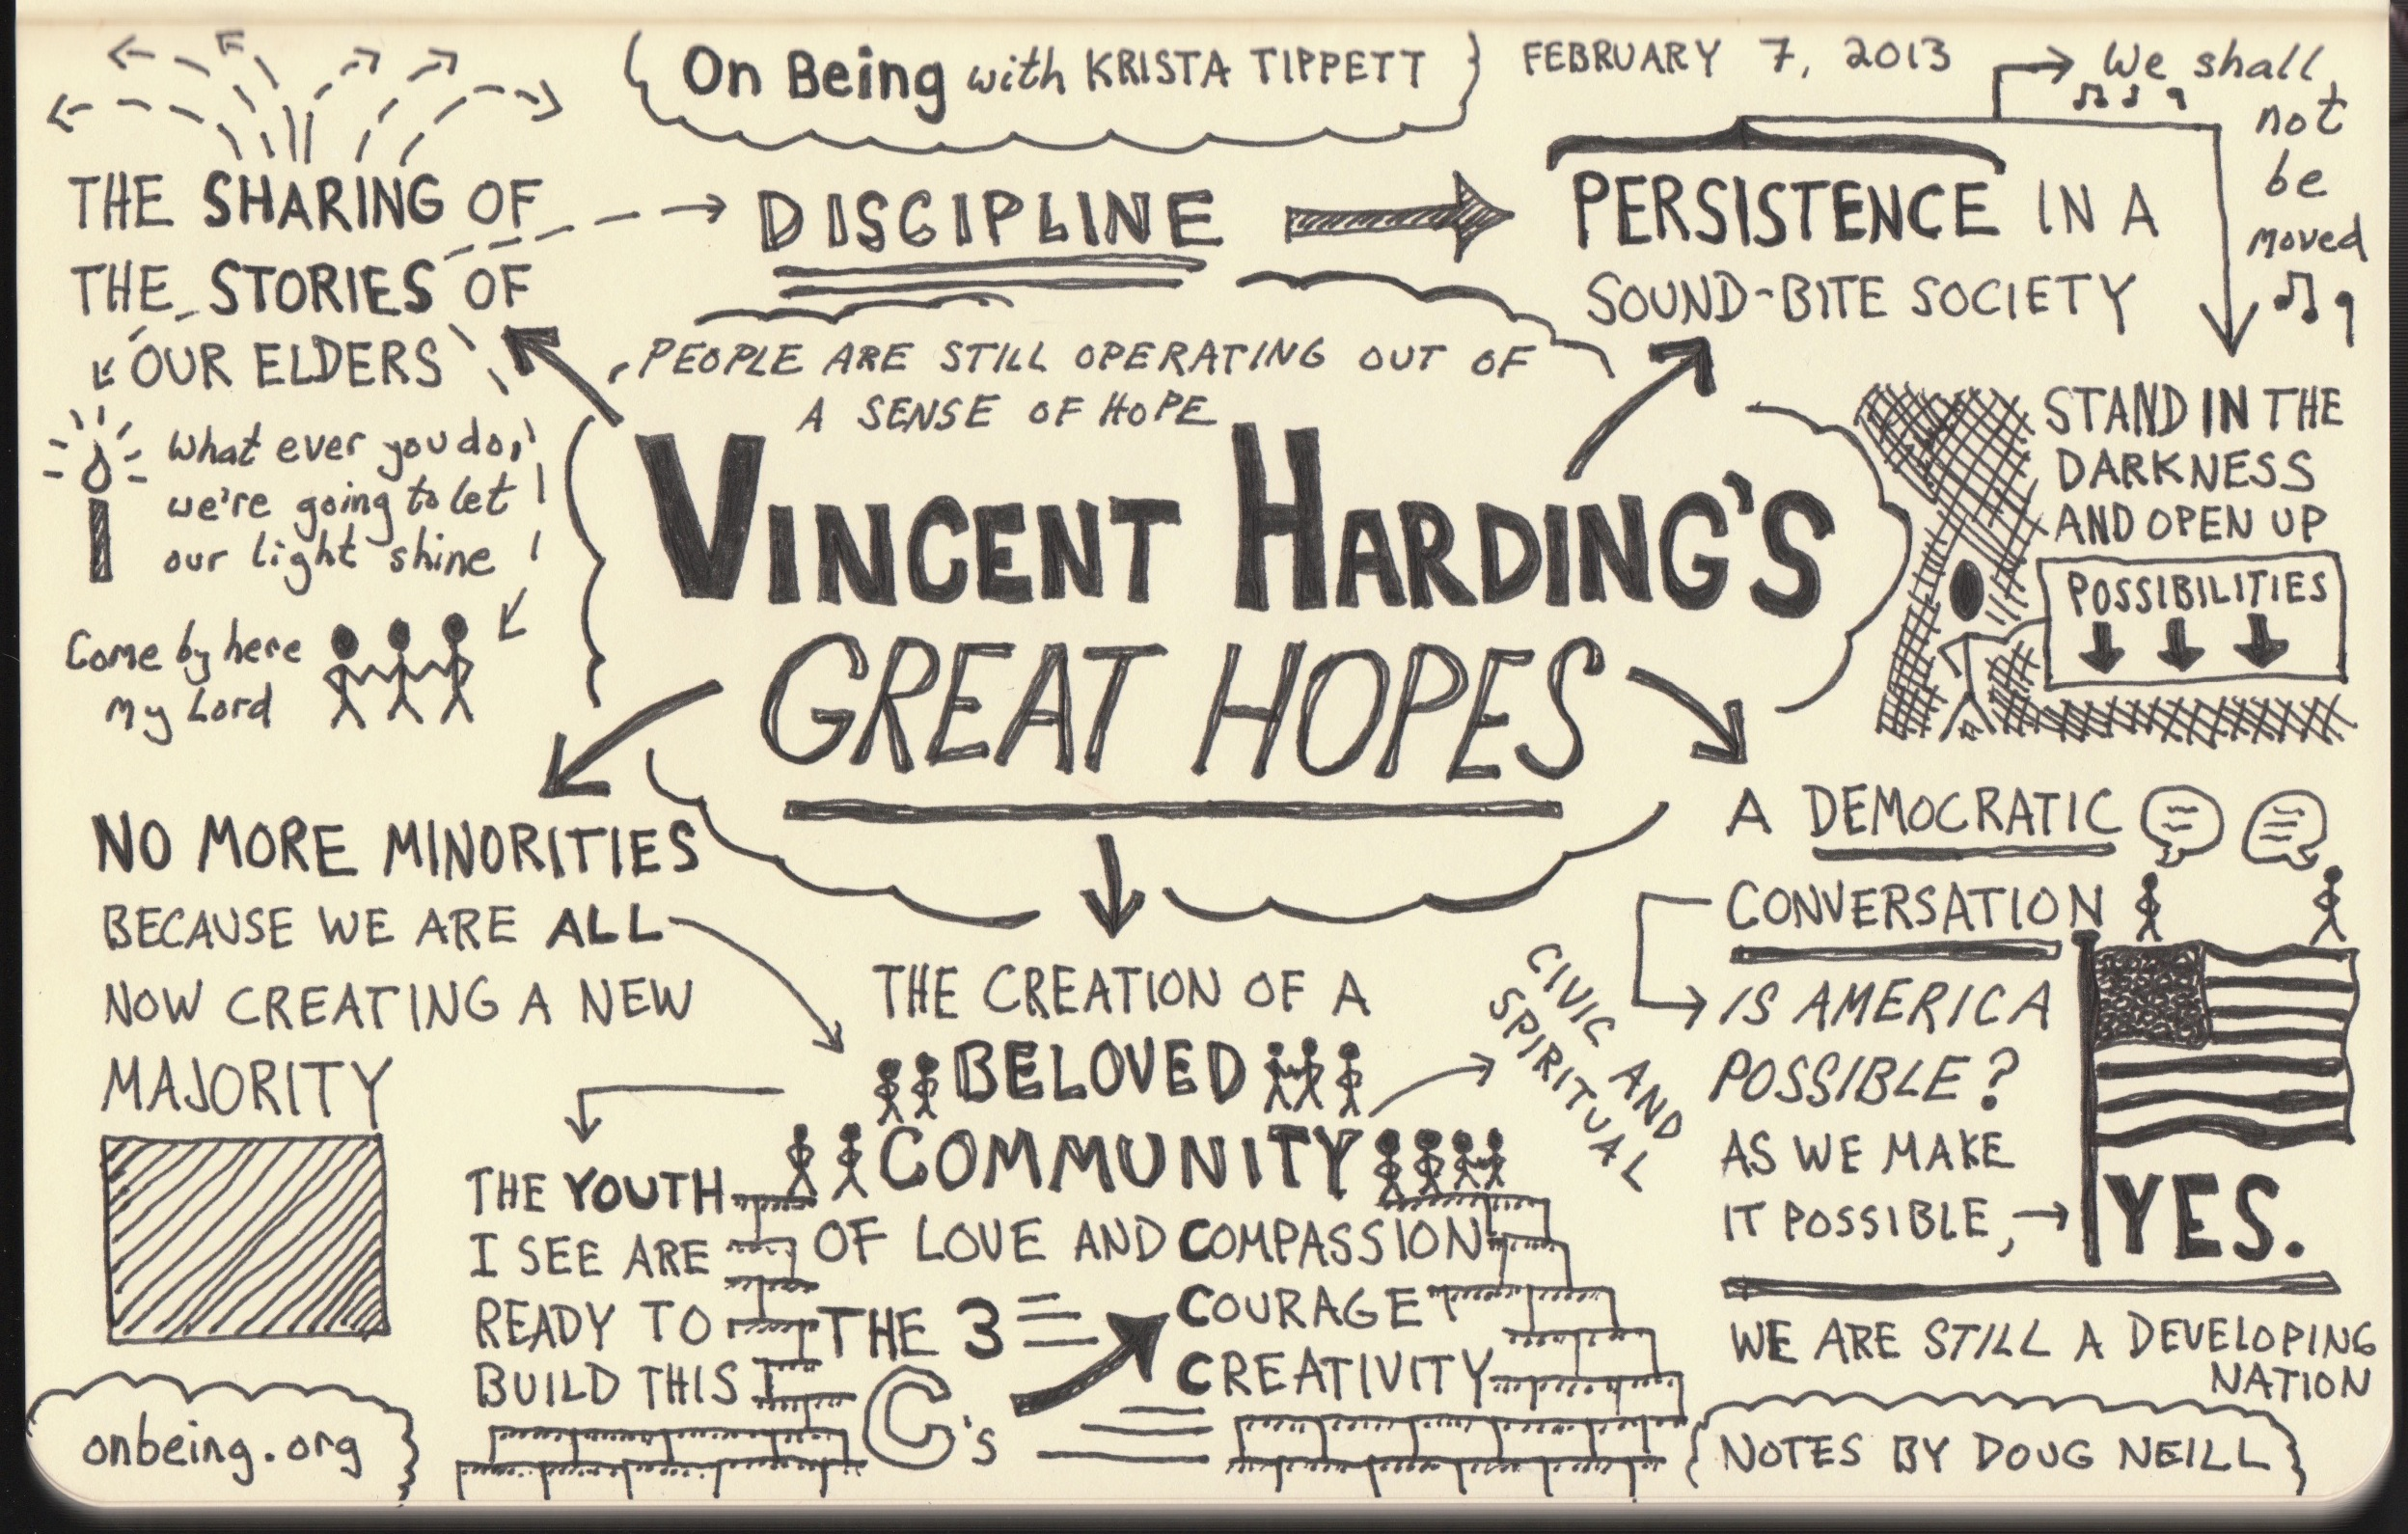 Vincent Harding On Being Sketchnotes - Doug Neill - hopes, civil rights movement, beloved community, discipline, persistence, elders, stories, democratic conversation, compassion, courage, creativity